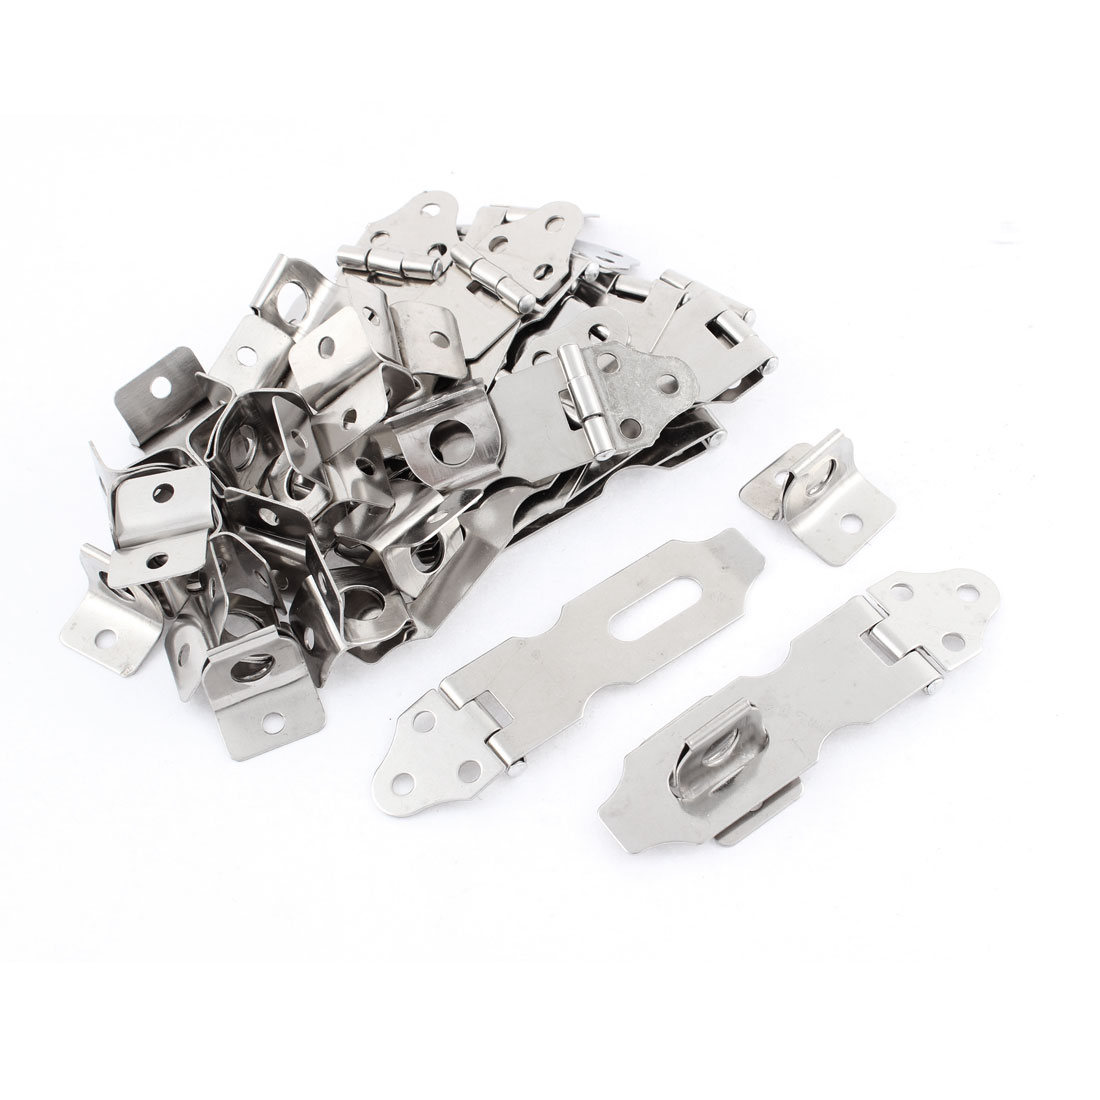 "Warehouse Sheds Gates Door Stainless Steel Padlock Hasp Staple 2.5"" 20pcs"